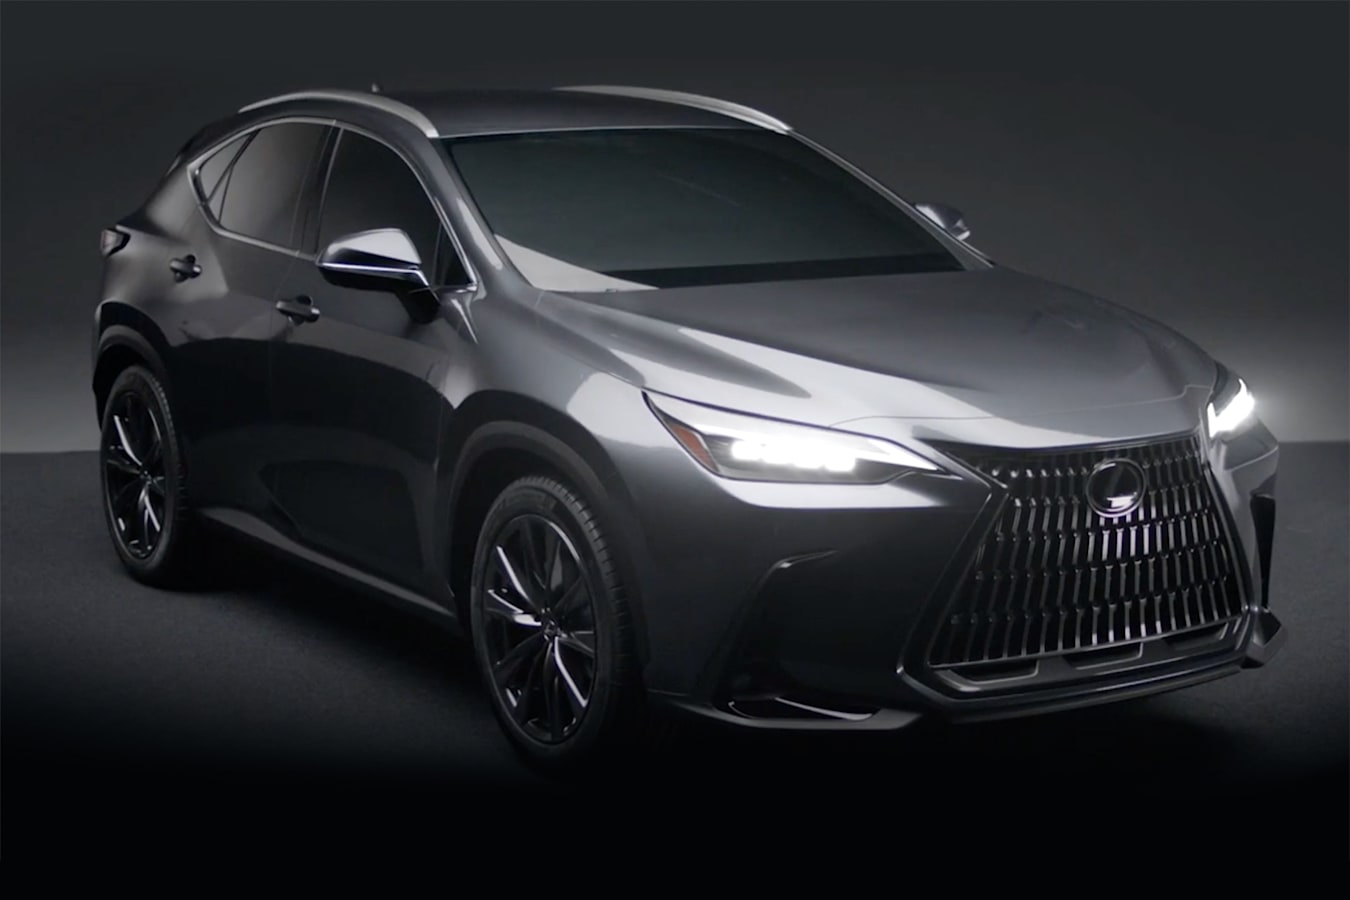 Archive Whichcar 2021 02 24 1 2022 Lexus Nx Suv Revealed 07